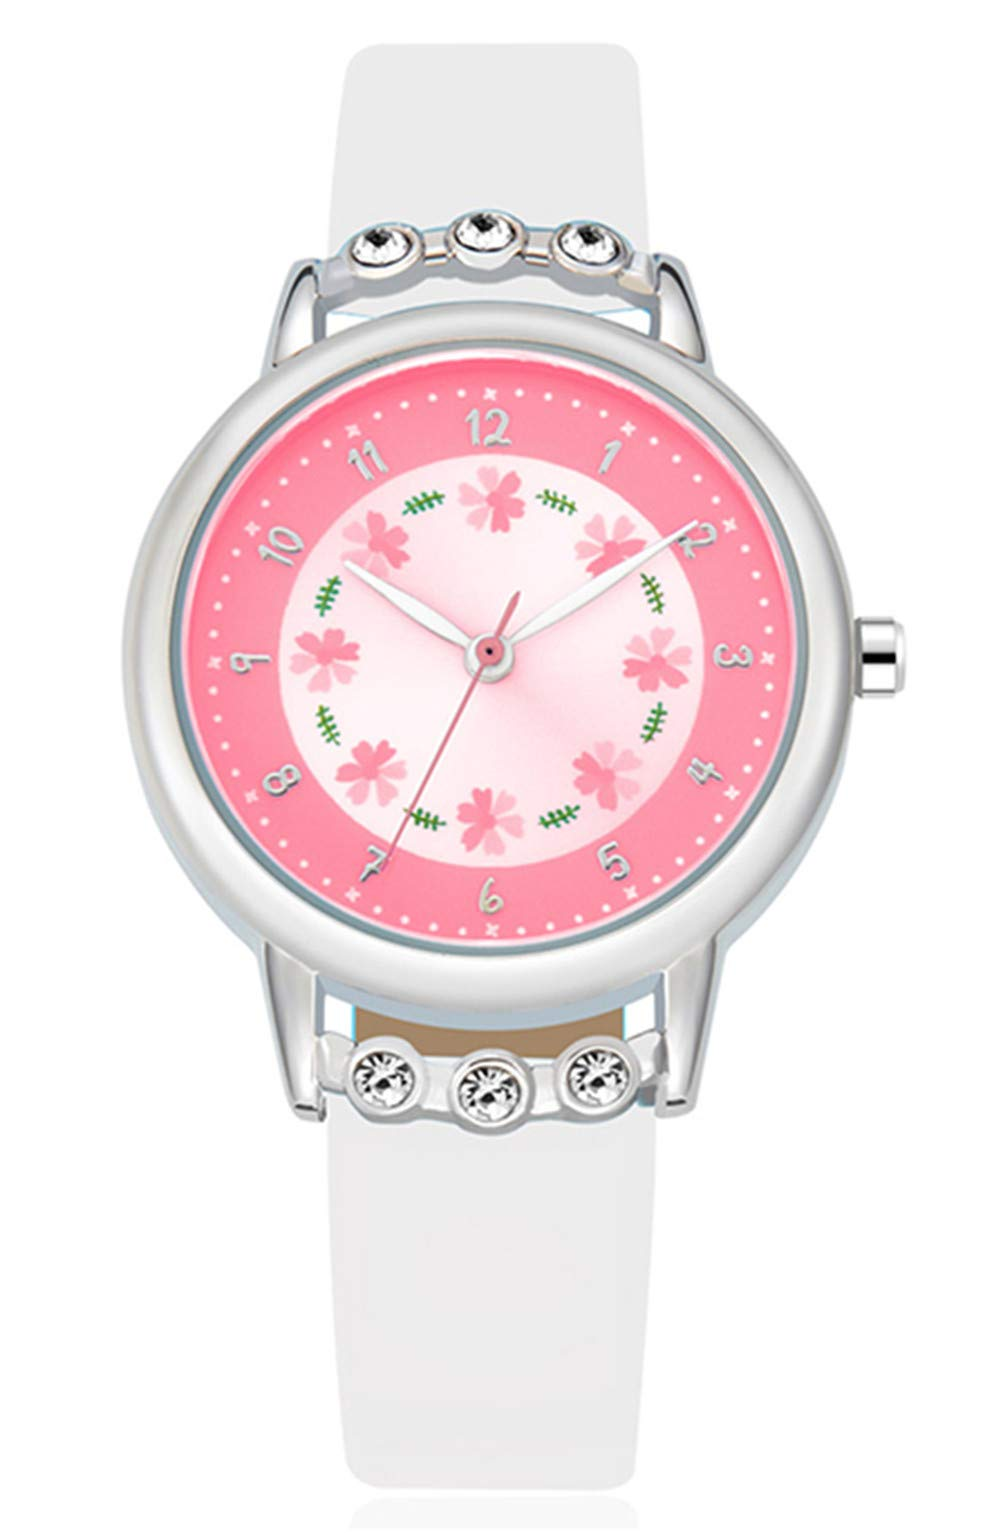 WUTAN Girls Watch Adorable White Leather Strap Wrist Band Flowers Dial with Diamond Cute Watch for Girls Casual Waterproof Wristwatches for Kids by WUTAN